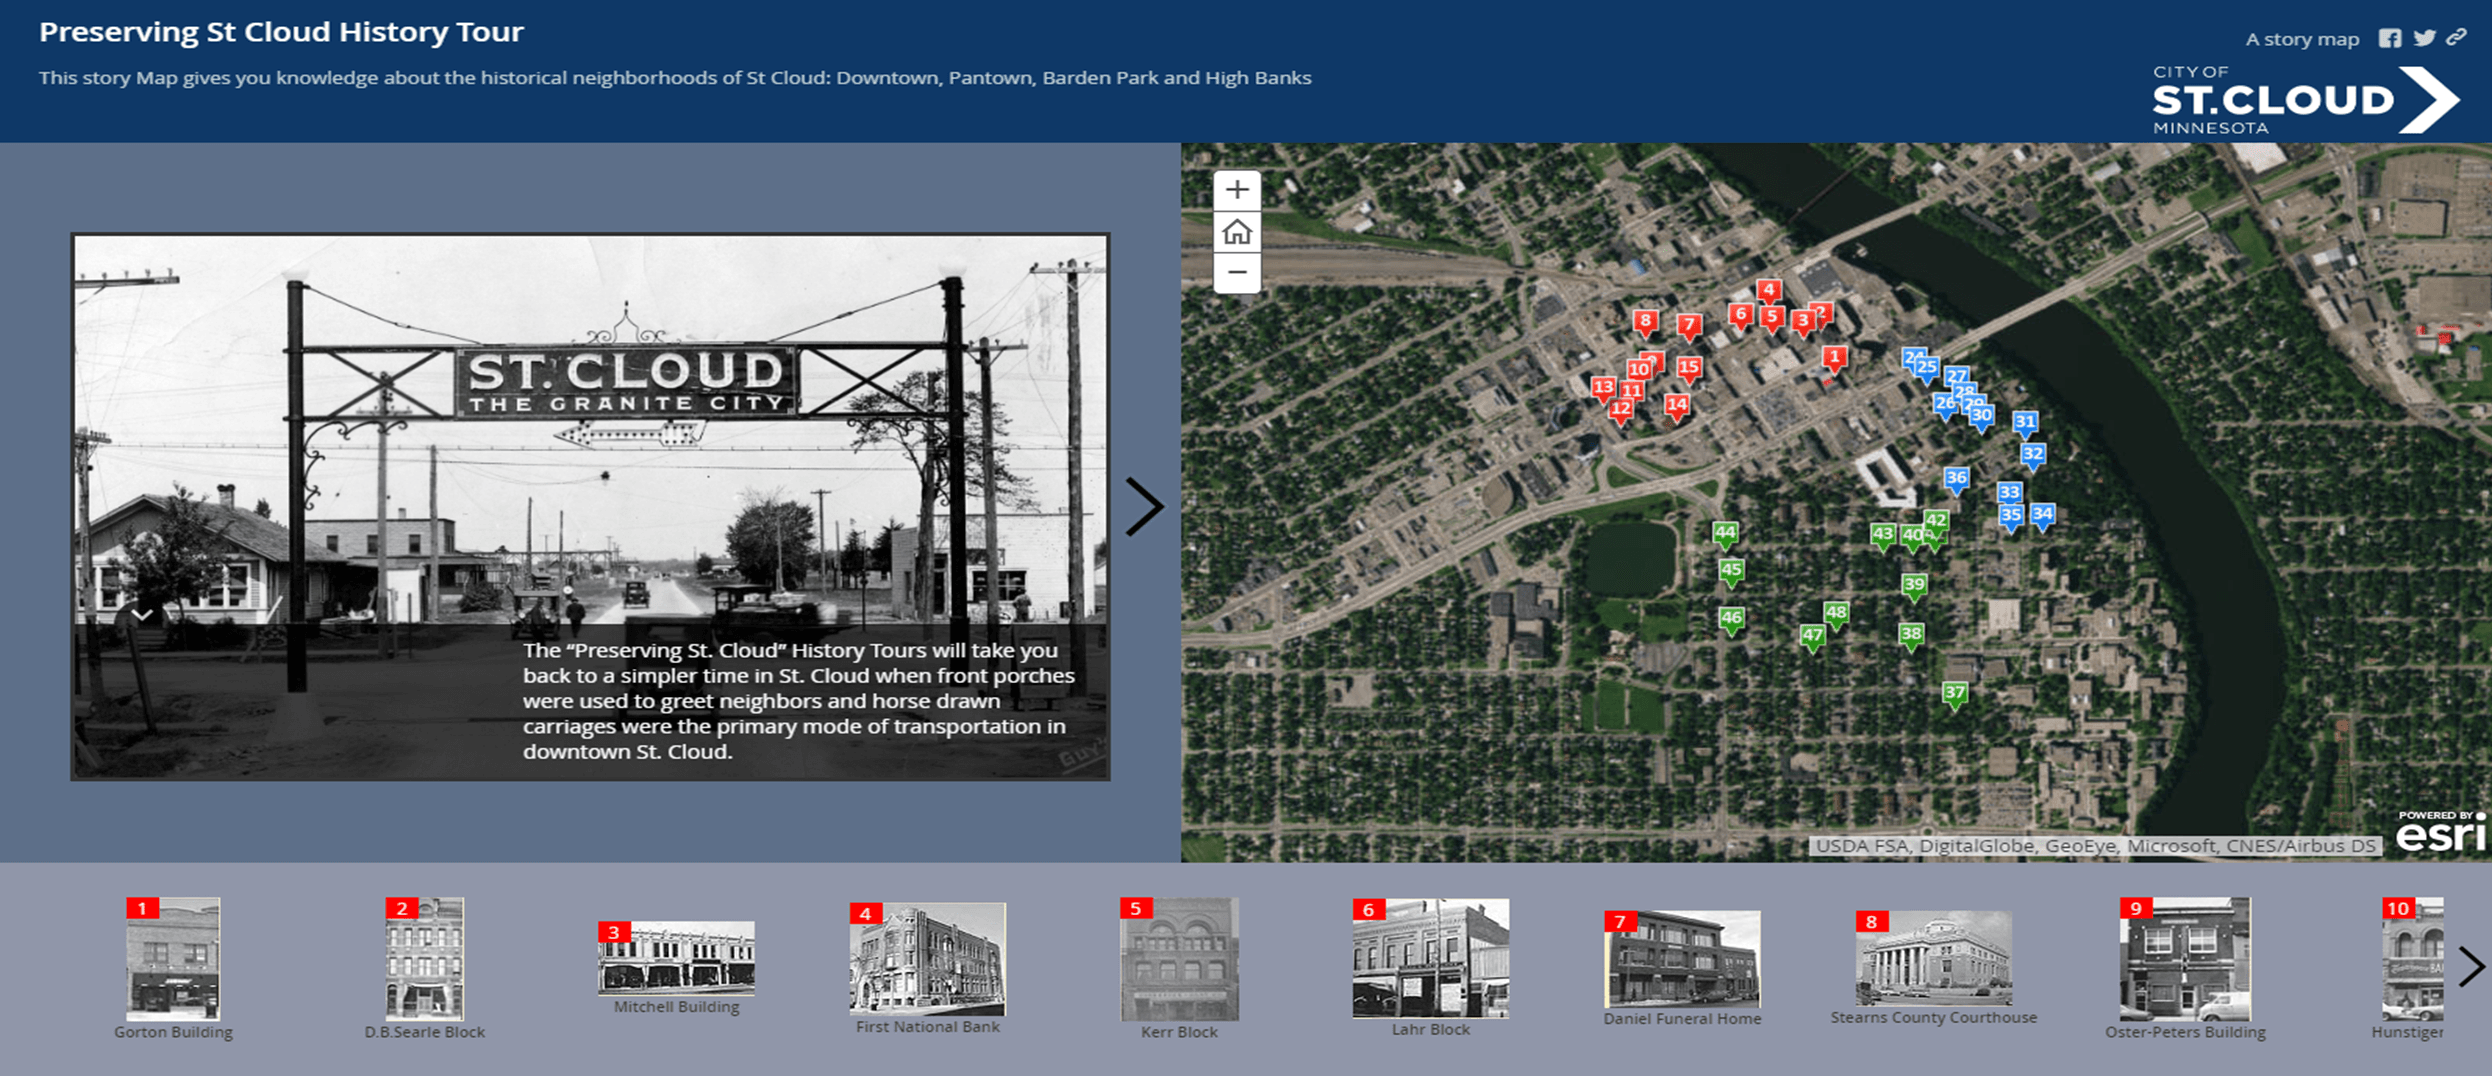 Preserving St. Cloud History Tour Storymap